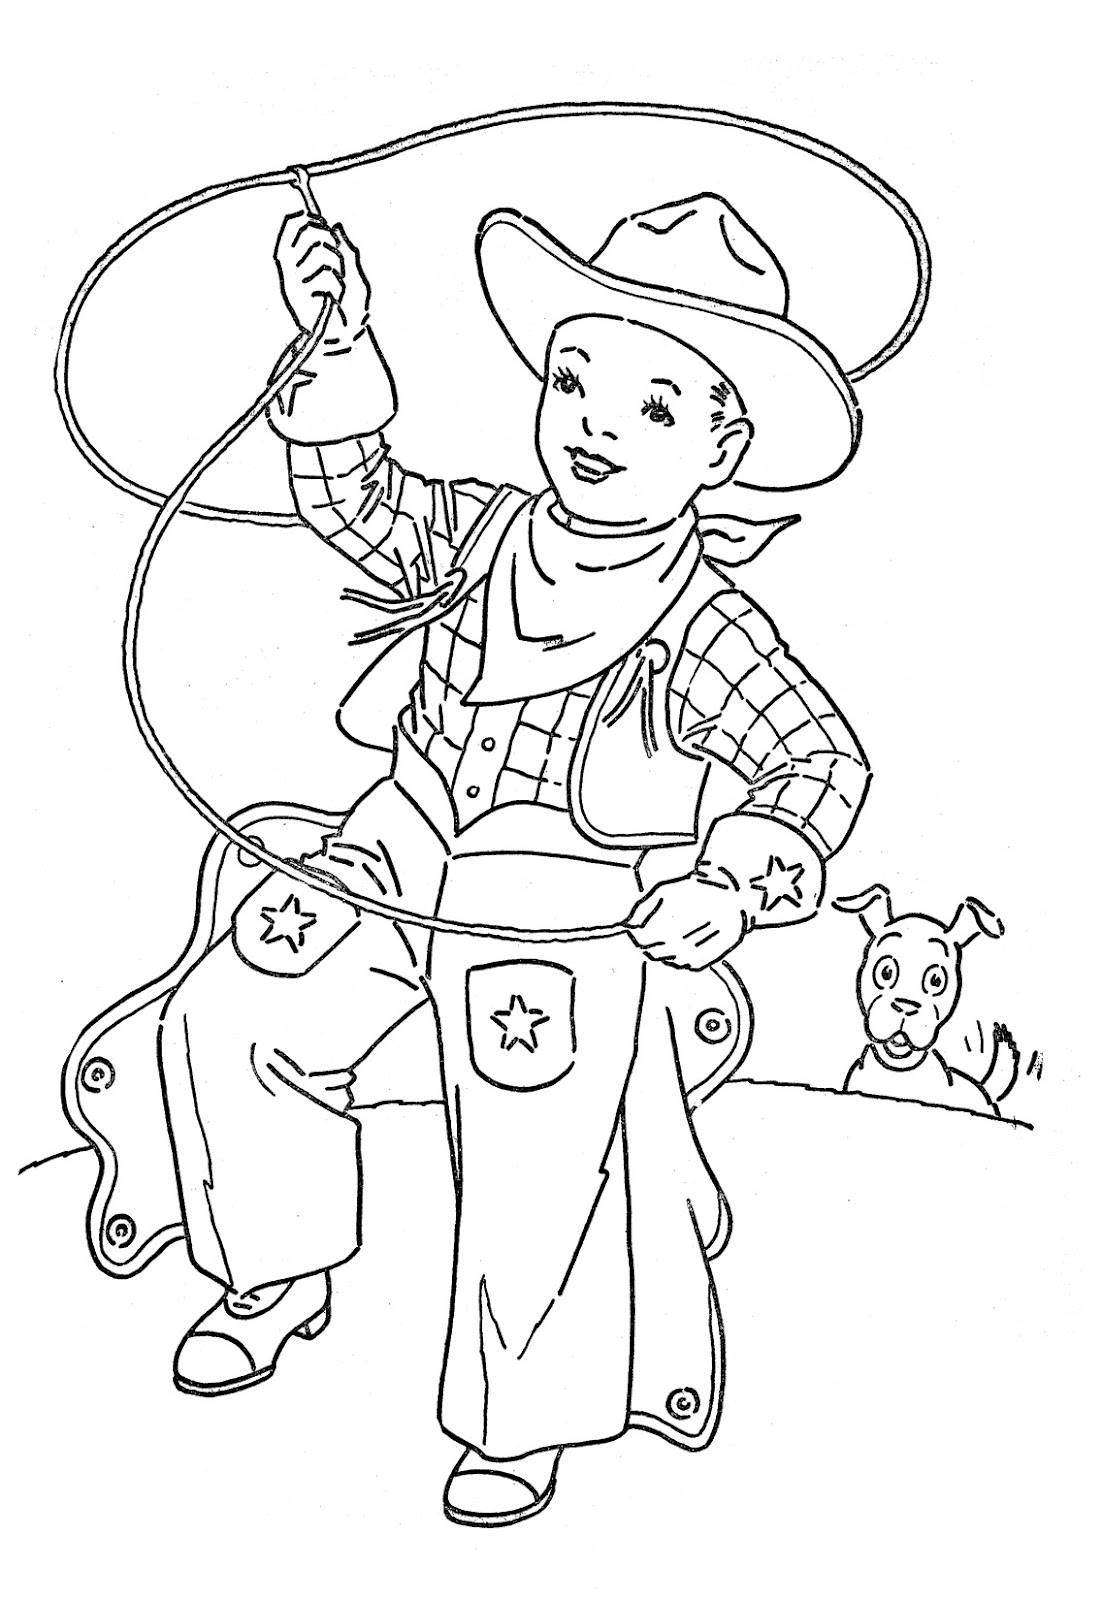 Printable Cowboy Coloring Pages Coloring Me Cowboy Color Pages